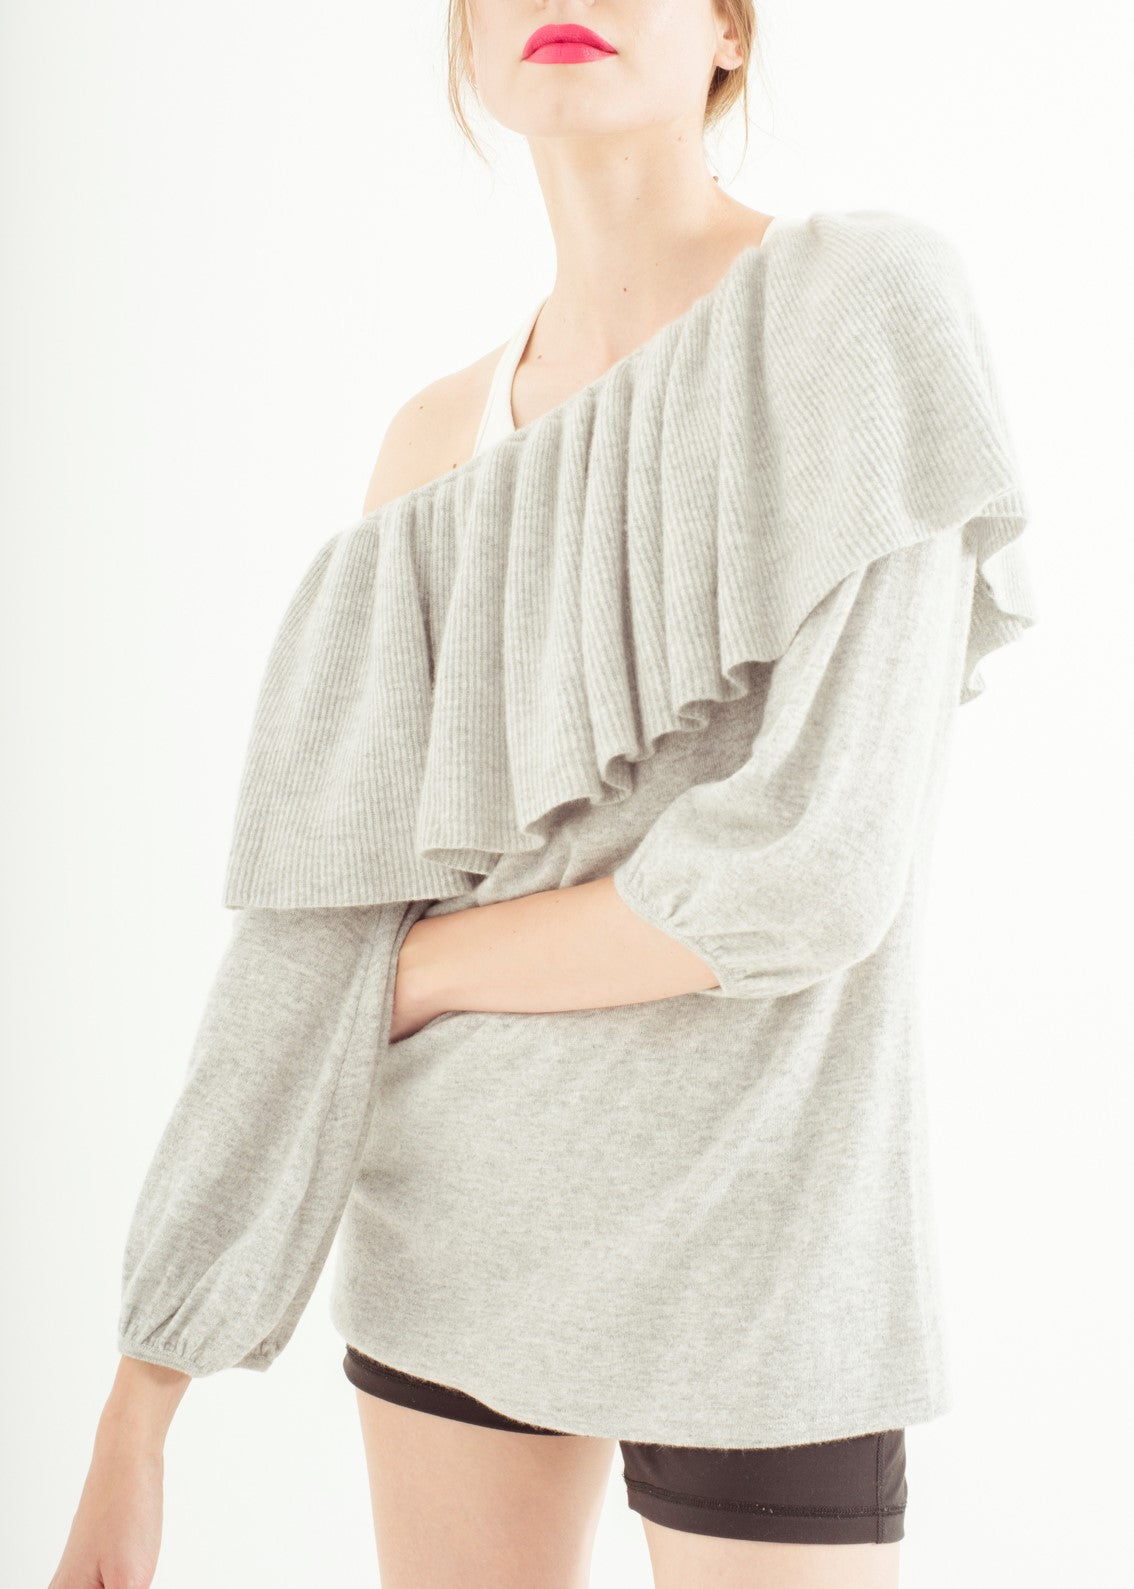 Zynni Cashmere ruffled trim pullover in grey